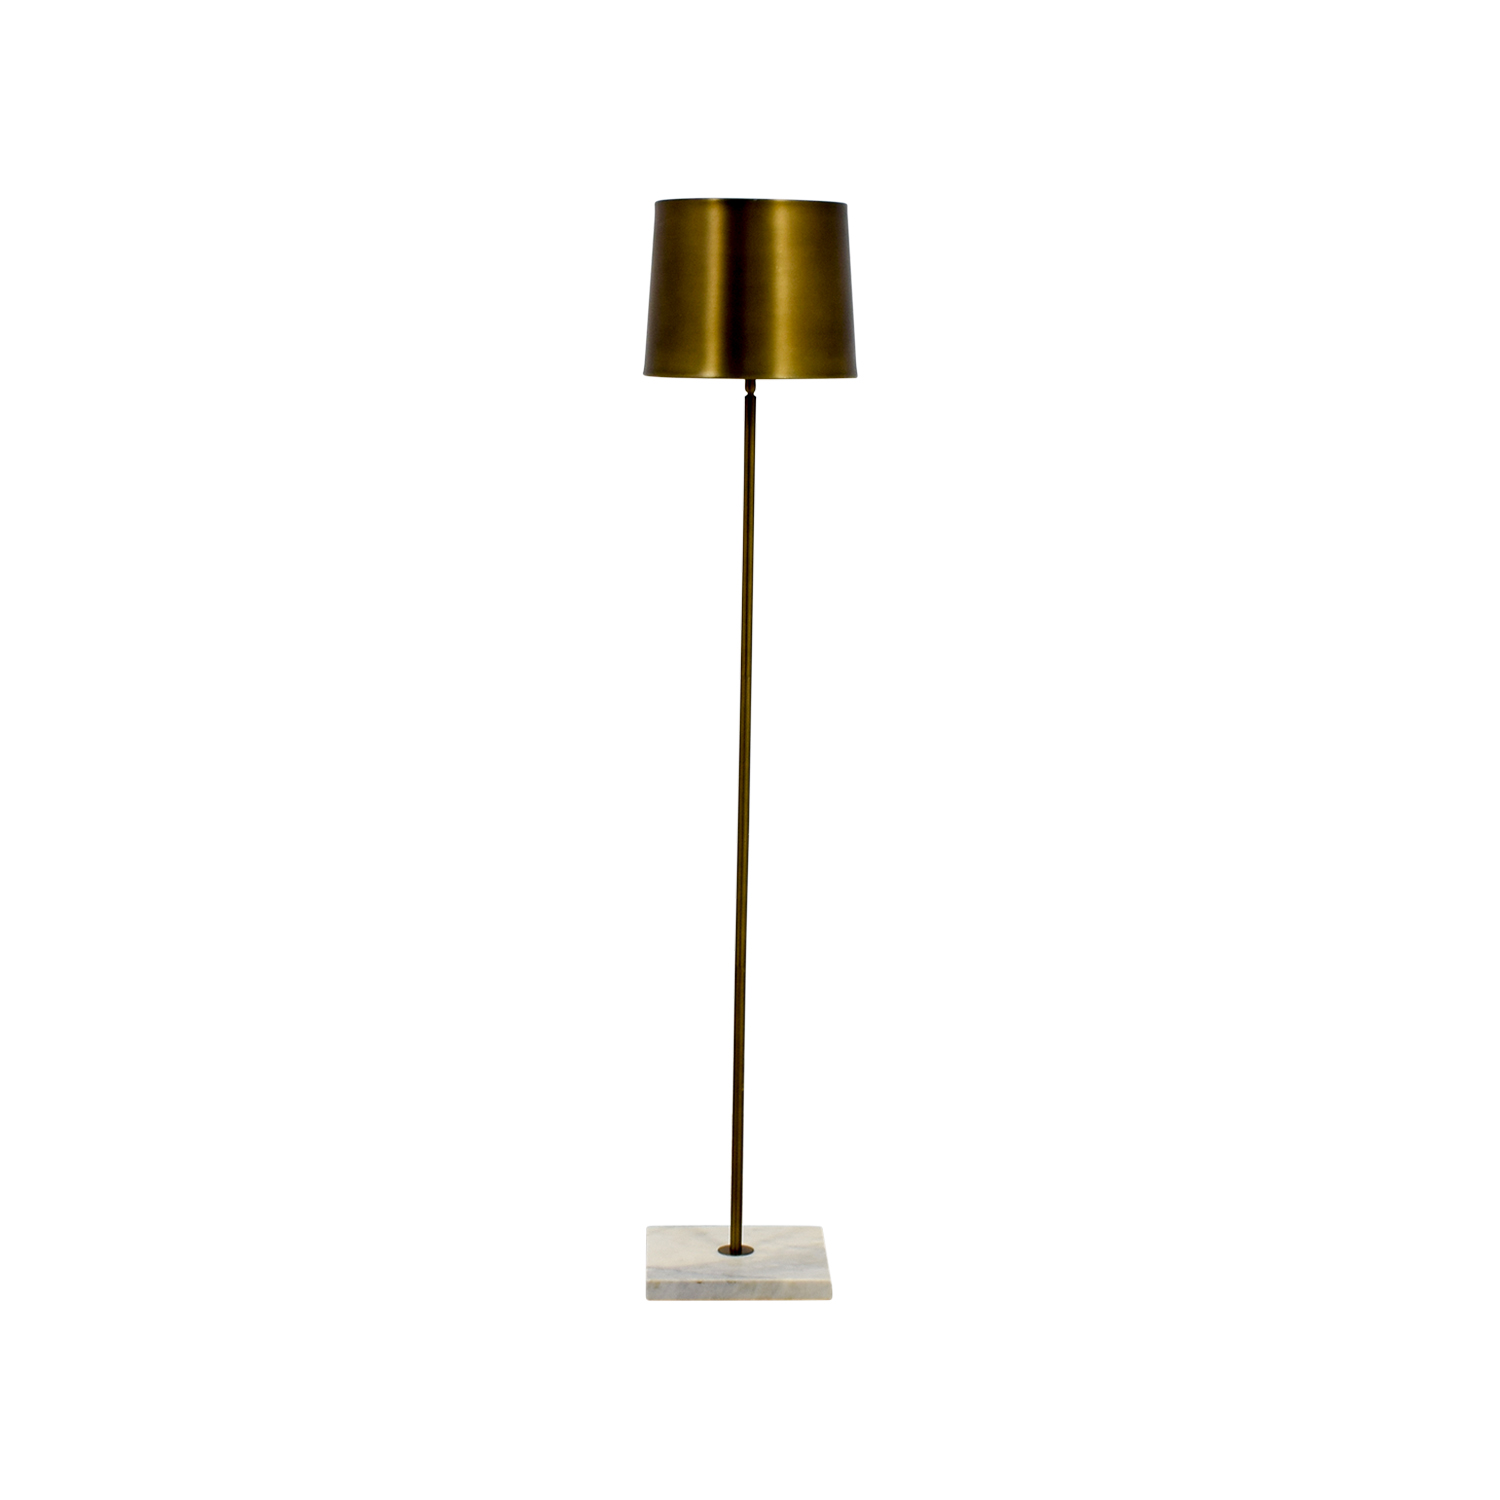 Crate & Barrel Crate & Barrel Floor Lamp nyc - 40% OFF - West Elm West Elm Floor Lamp With Table Attached / Decor